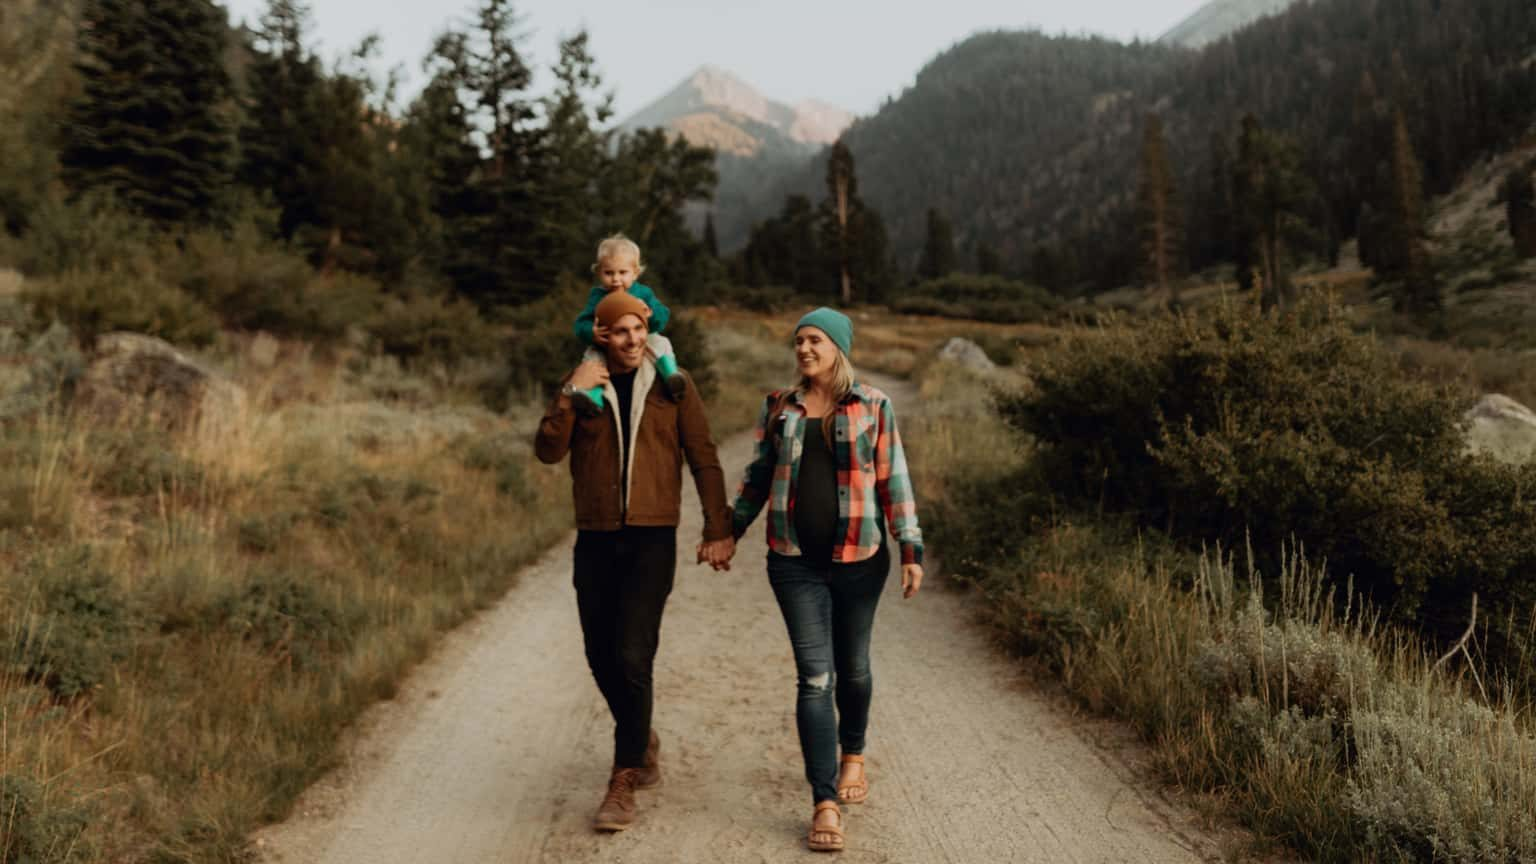 Couple walking with young child on hiking path in national park.